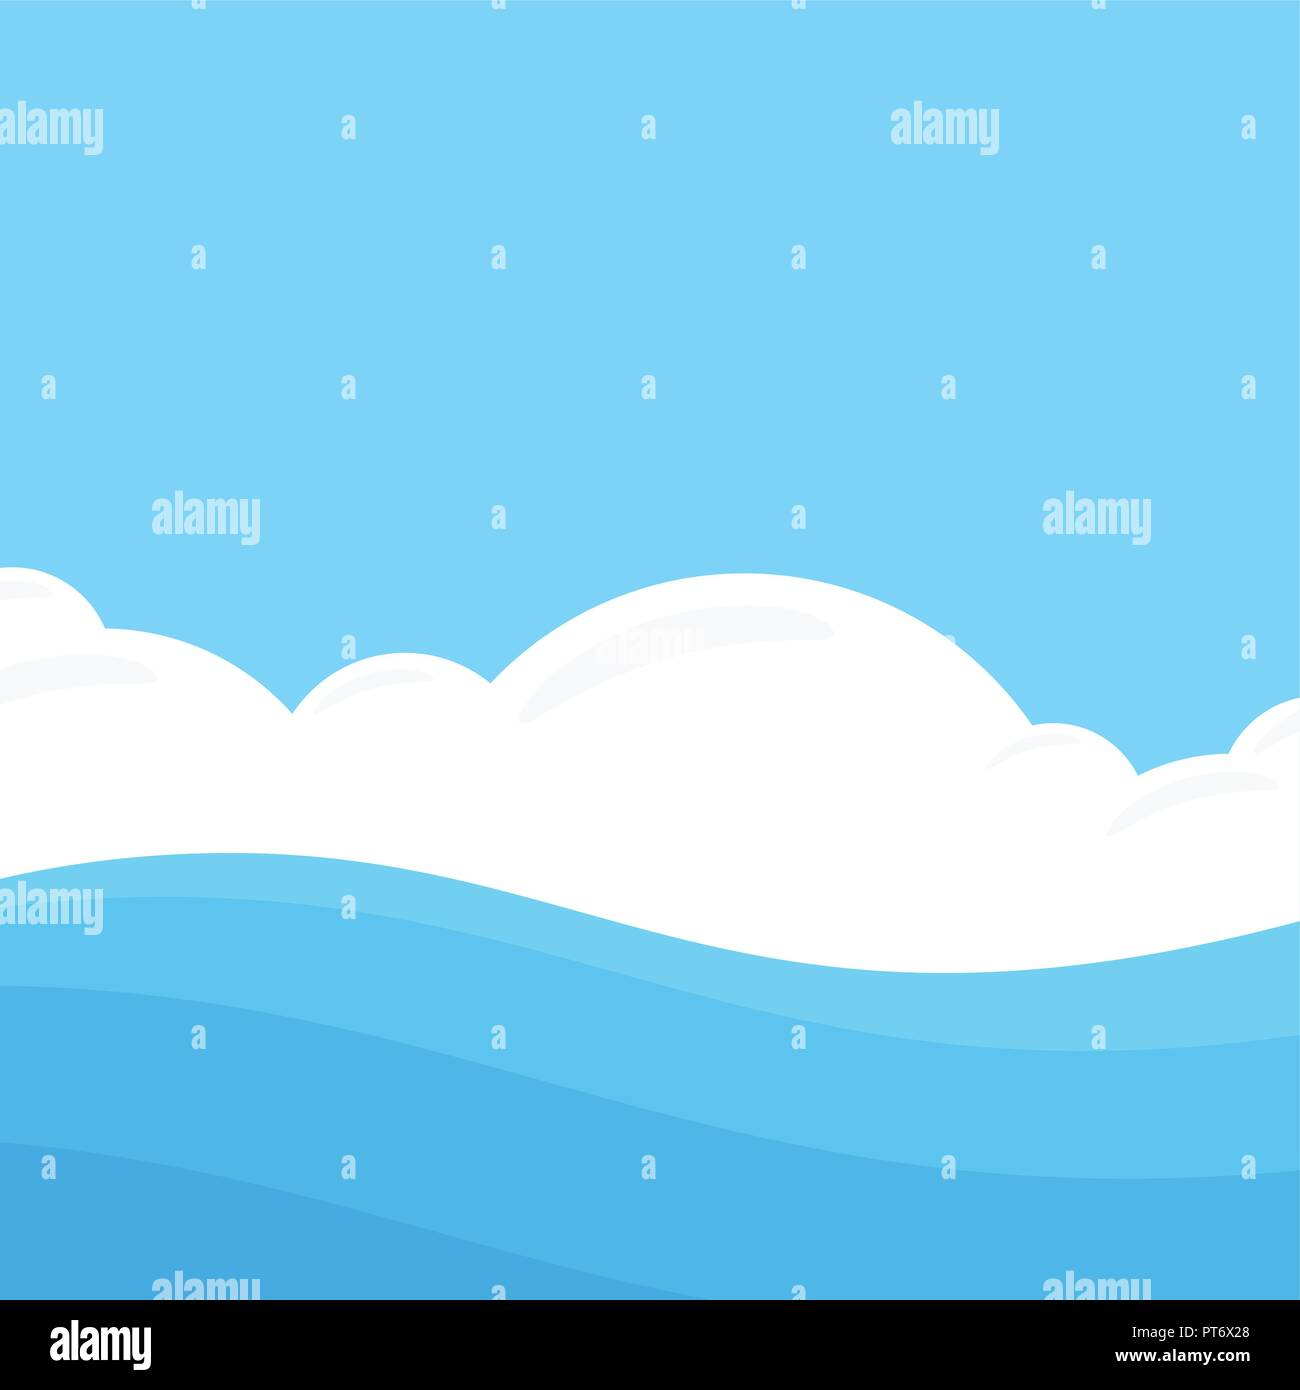 Seascape in Flat style - Stock Vector